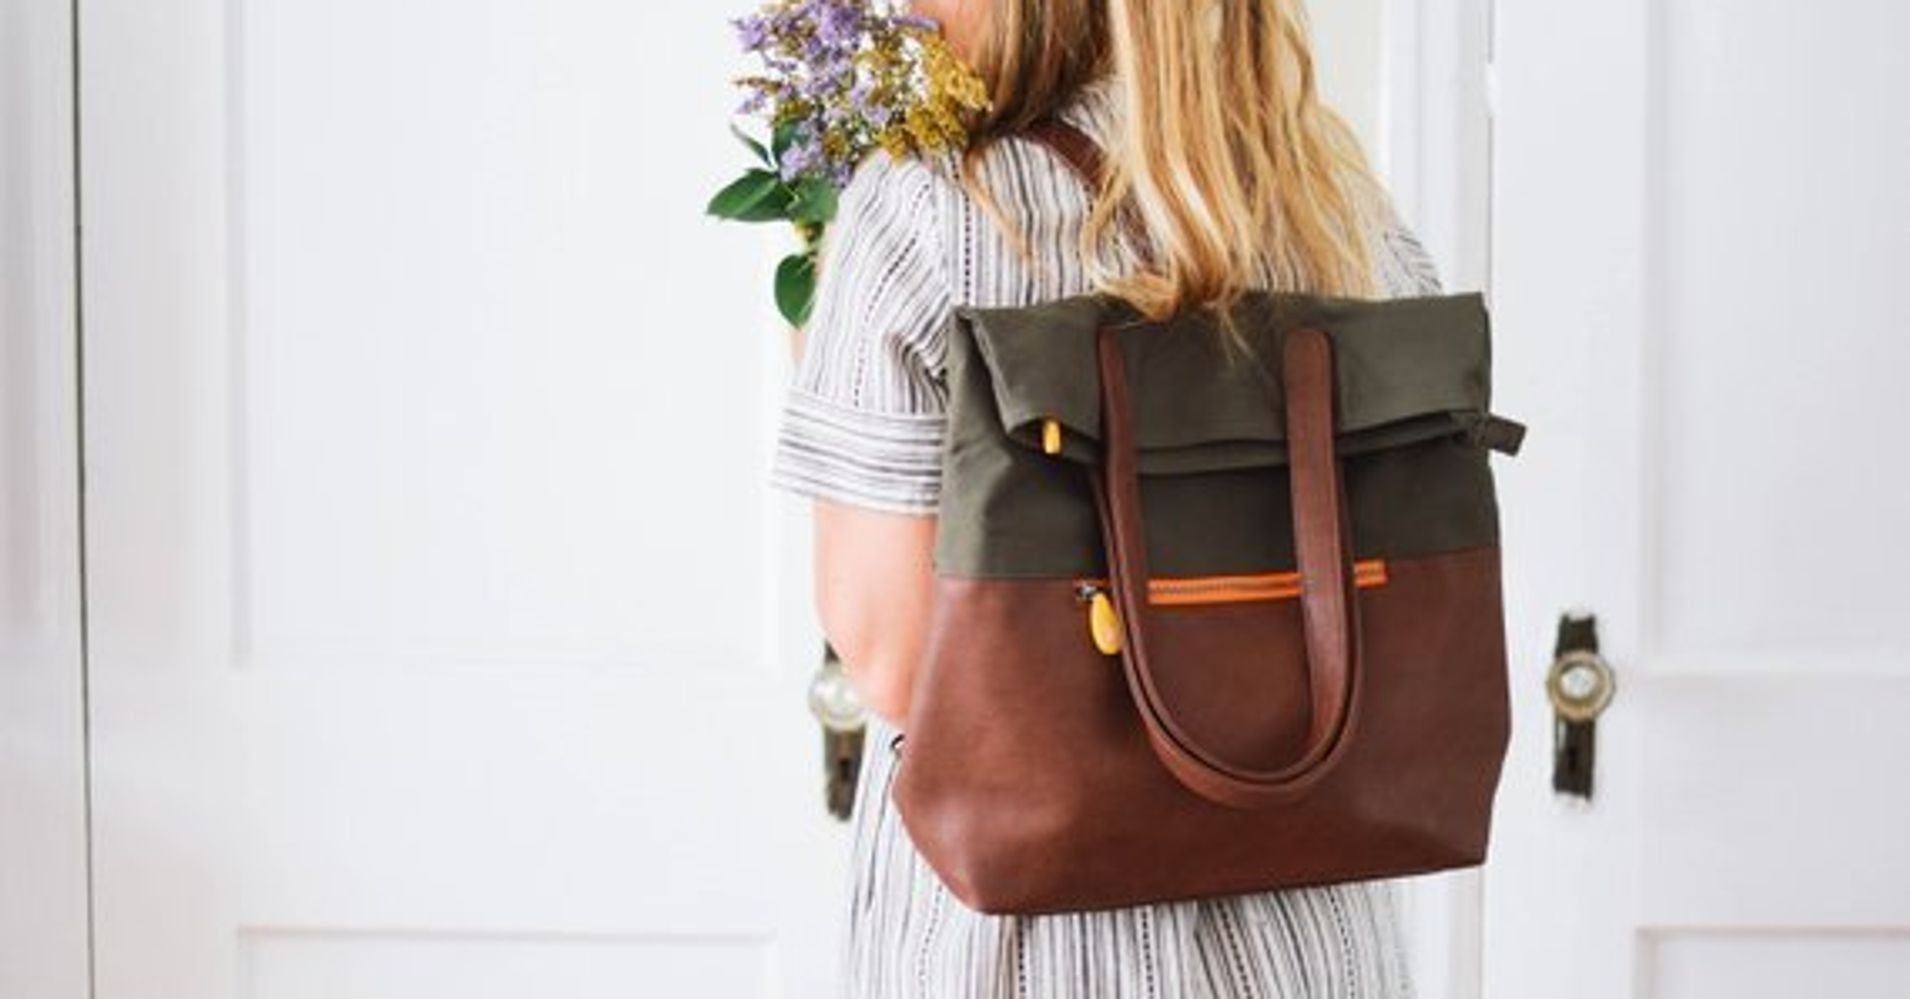 15 Purses That Convert To Backpacks To Give You Way More Options ... 104609c3d8114